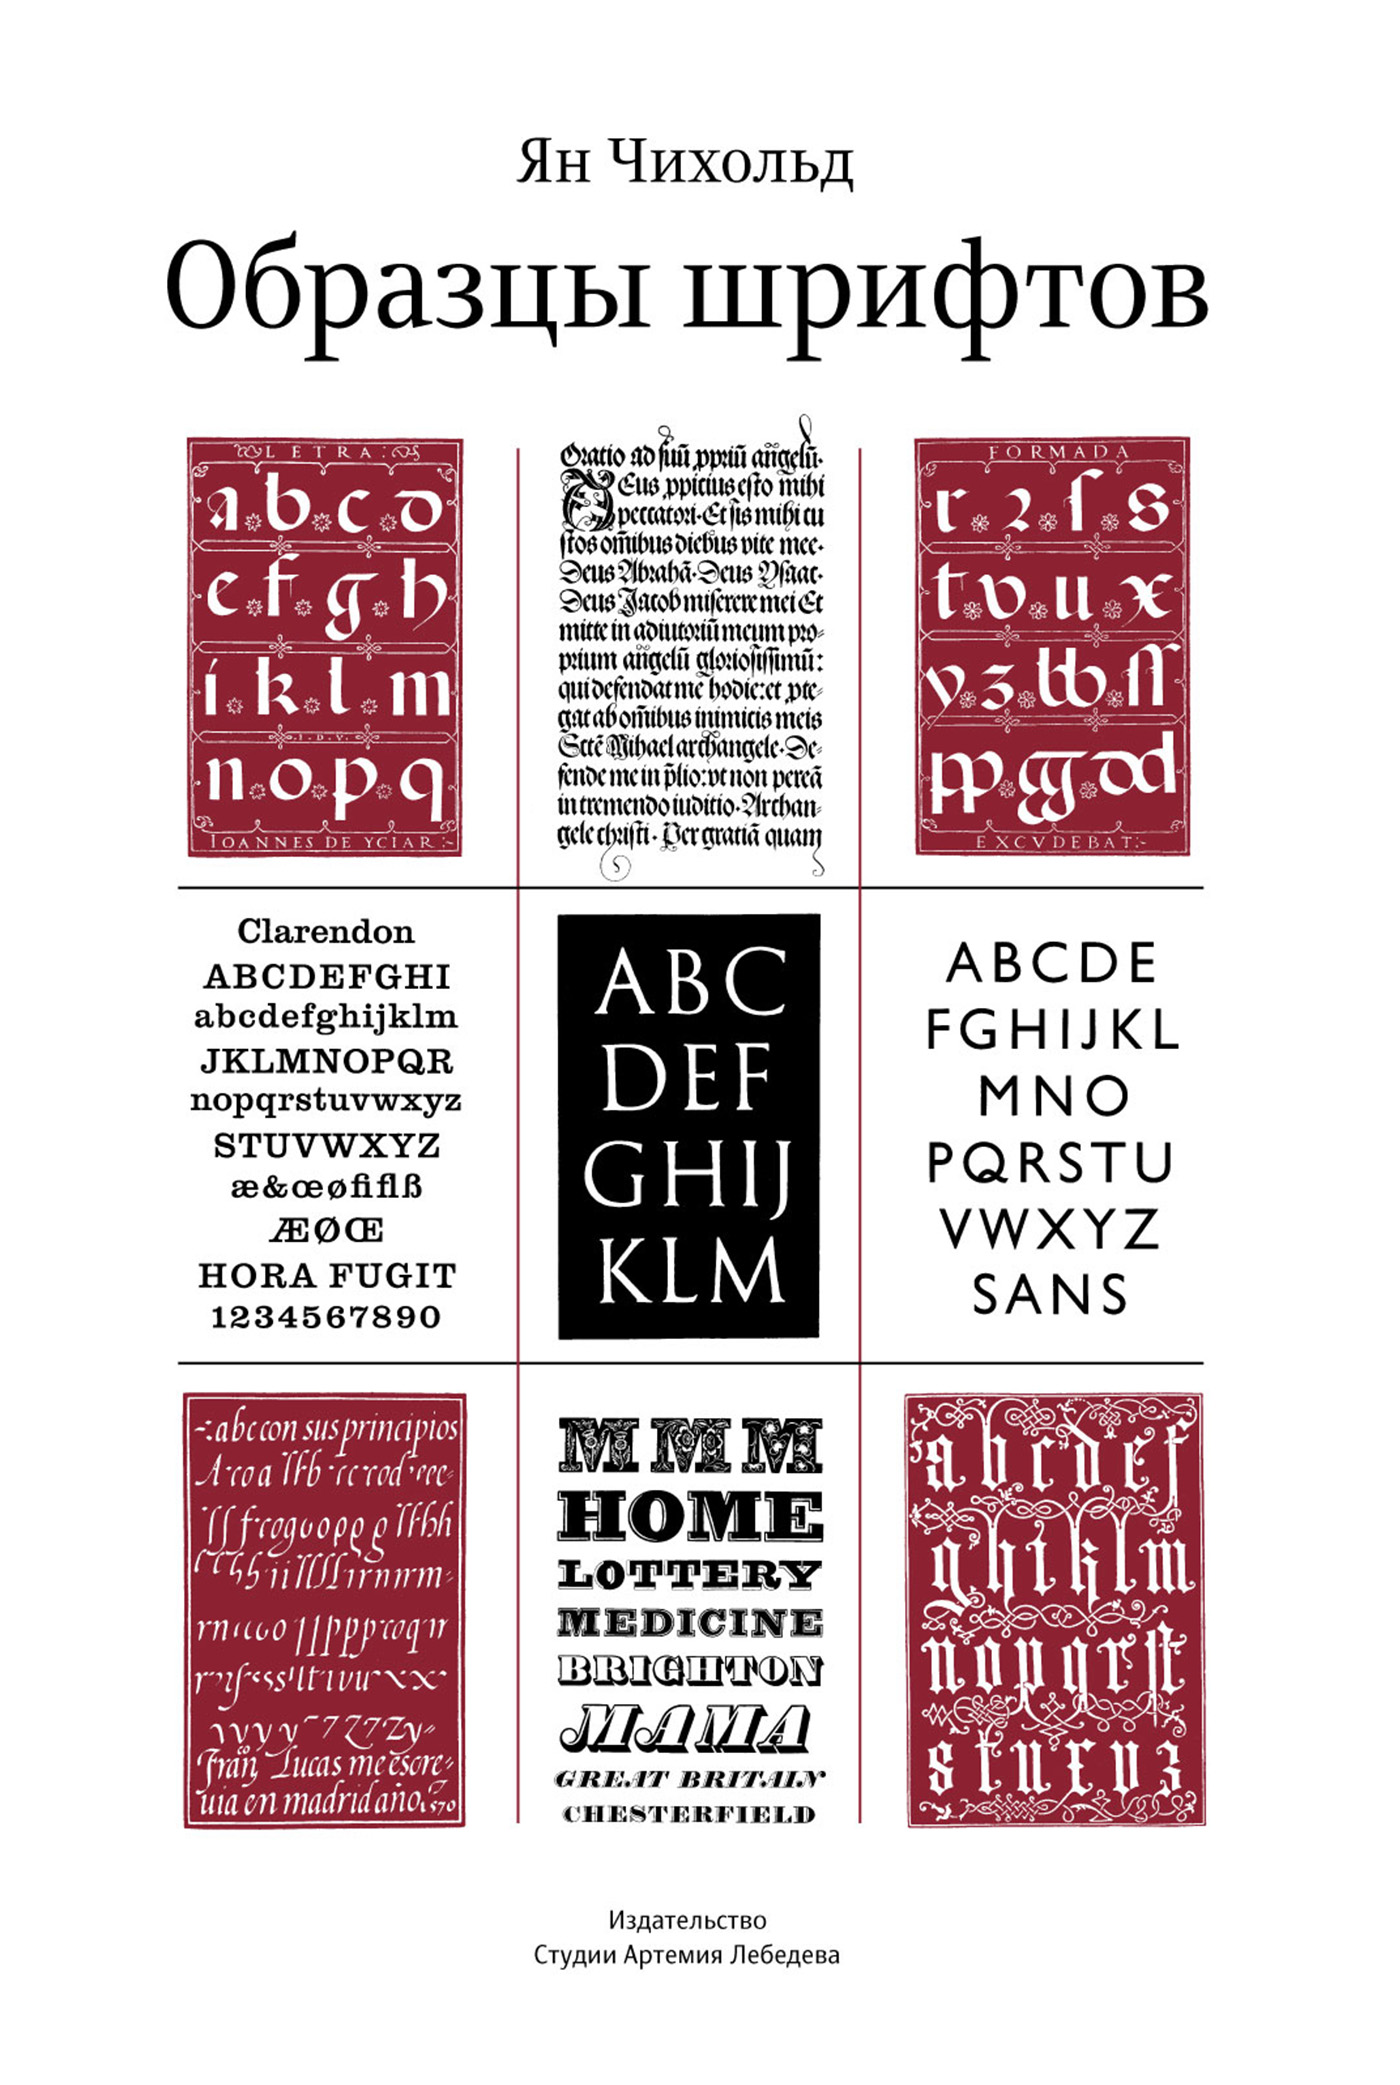 Treasury of Alphabets and Lettering (in Russian)